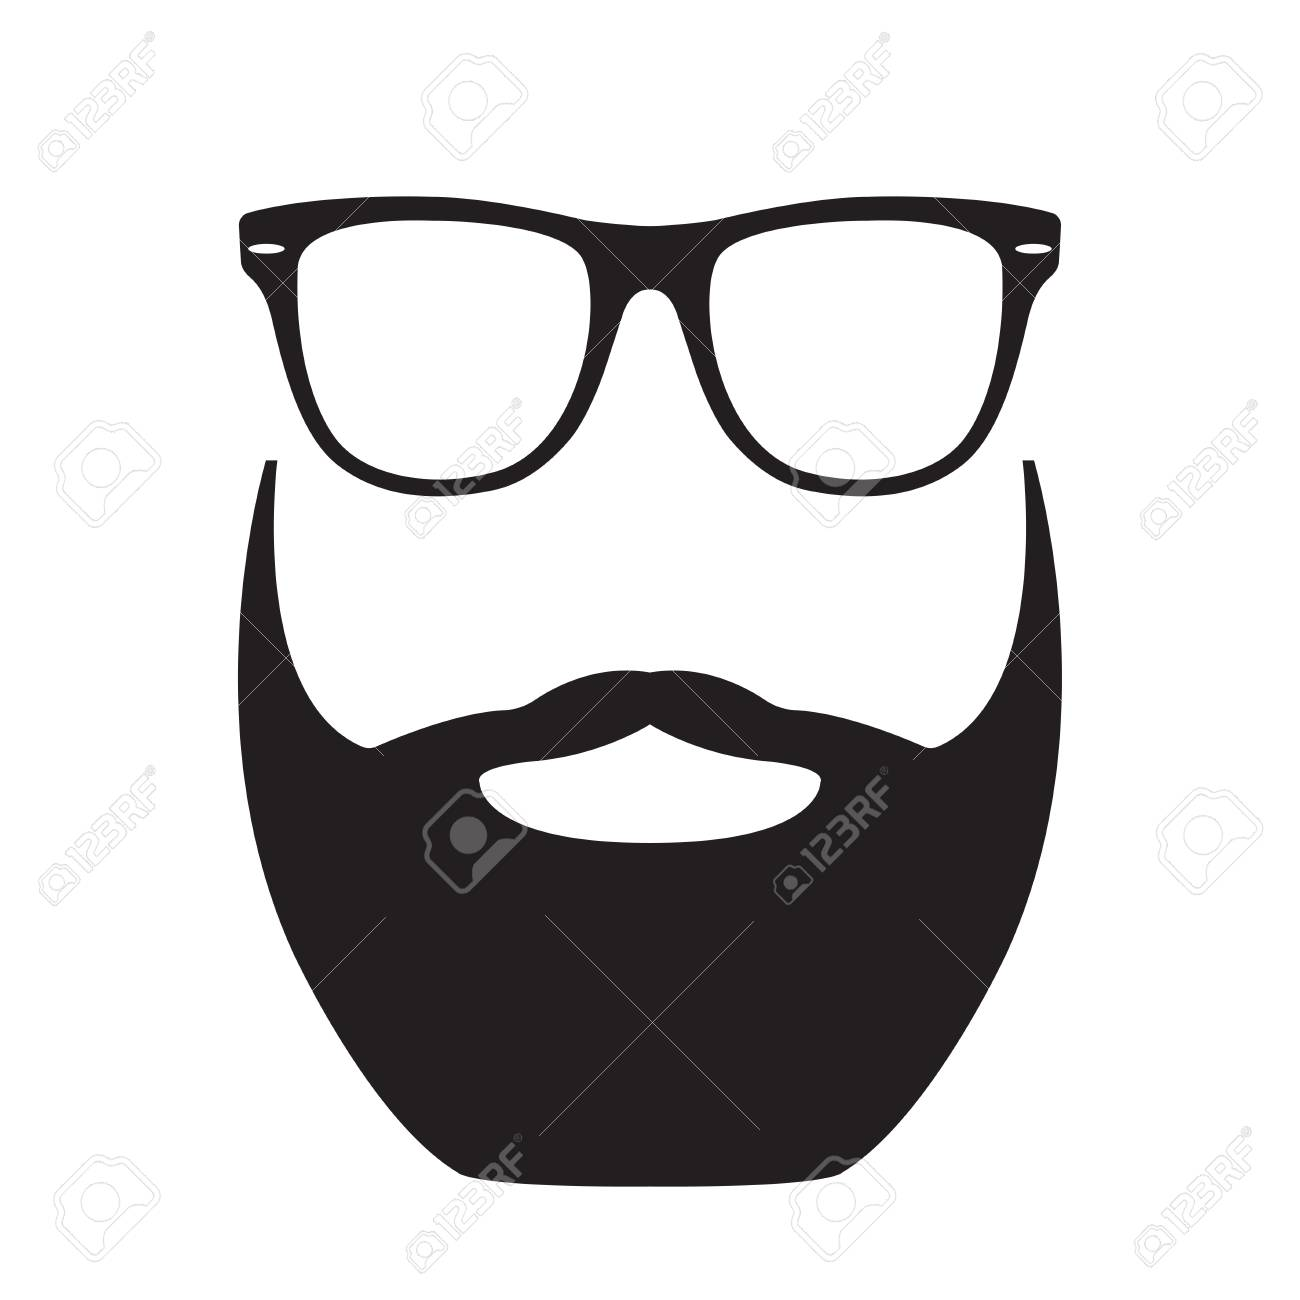 9fc9b3da12a Beard with Glasses. Hipster face silhouette. Vector illustration. Stock  Vector - 109759463